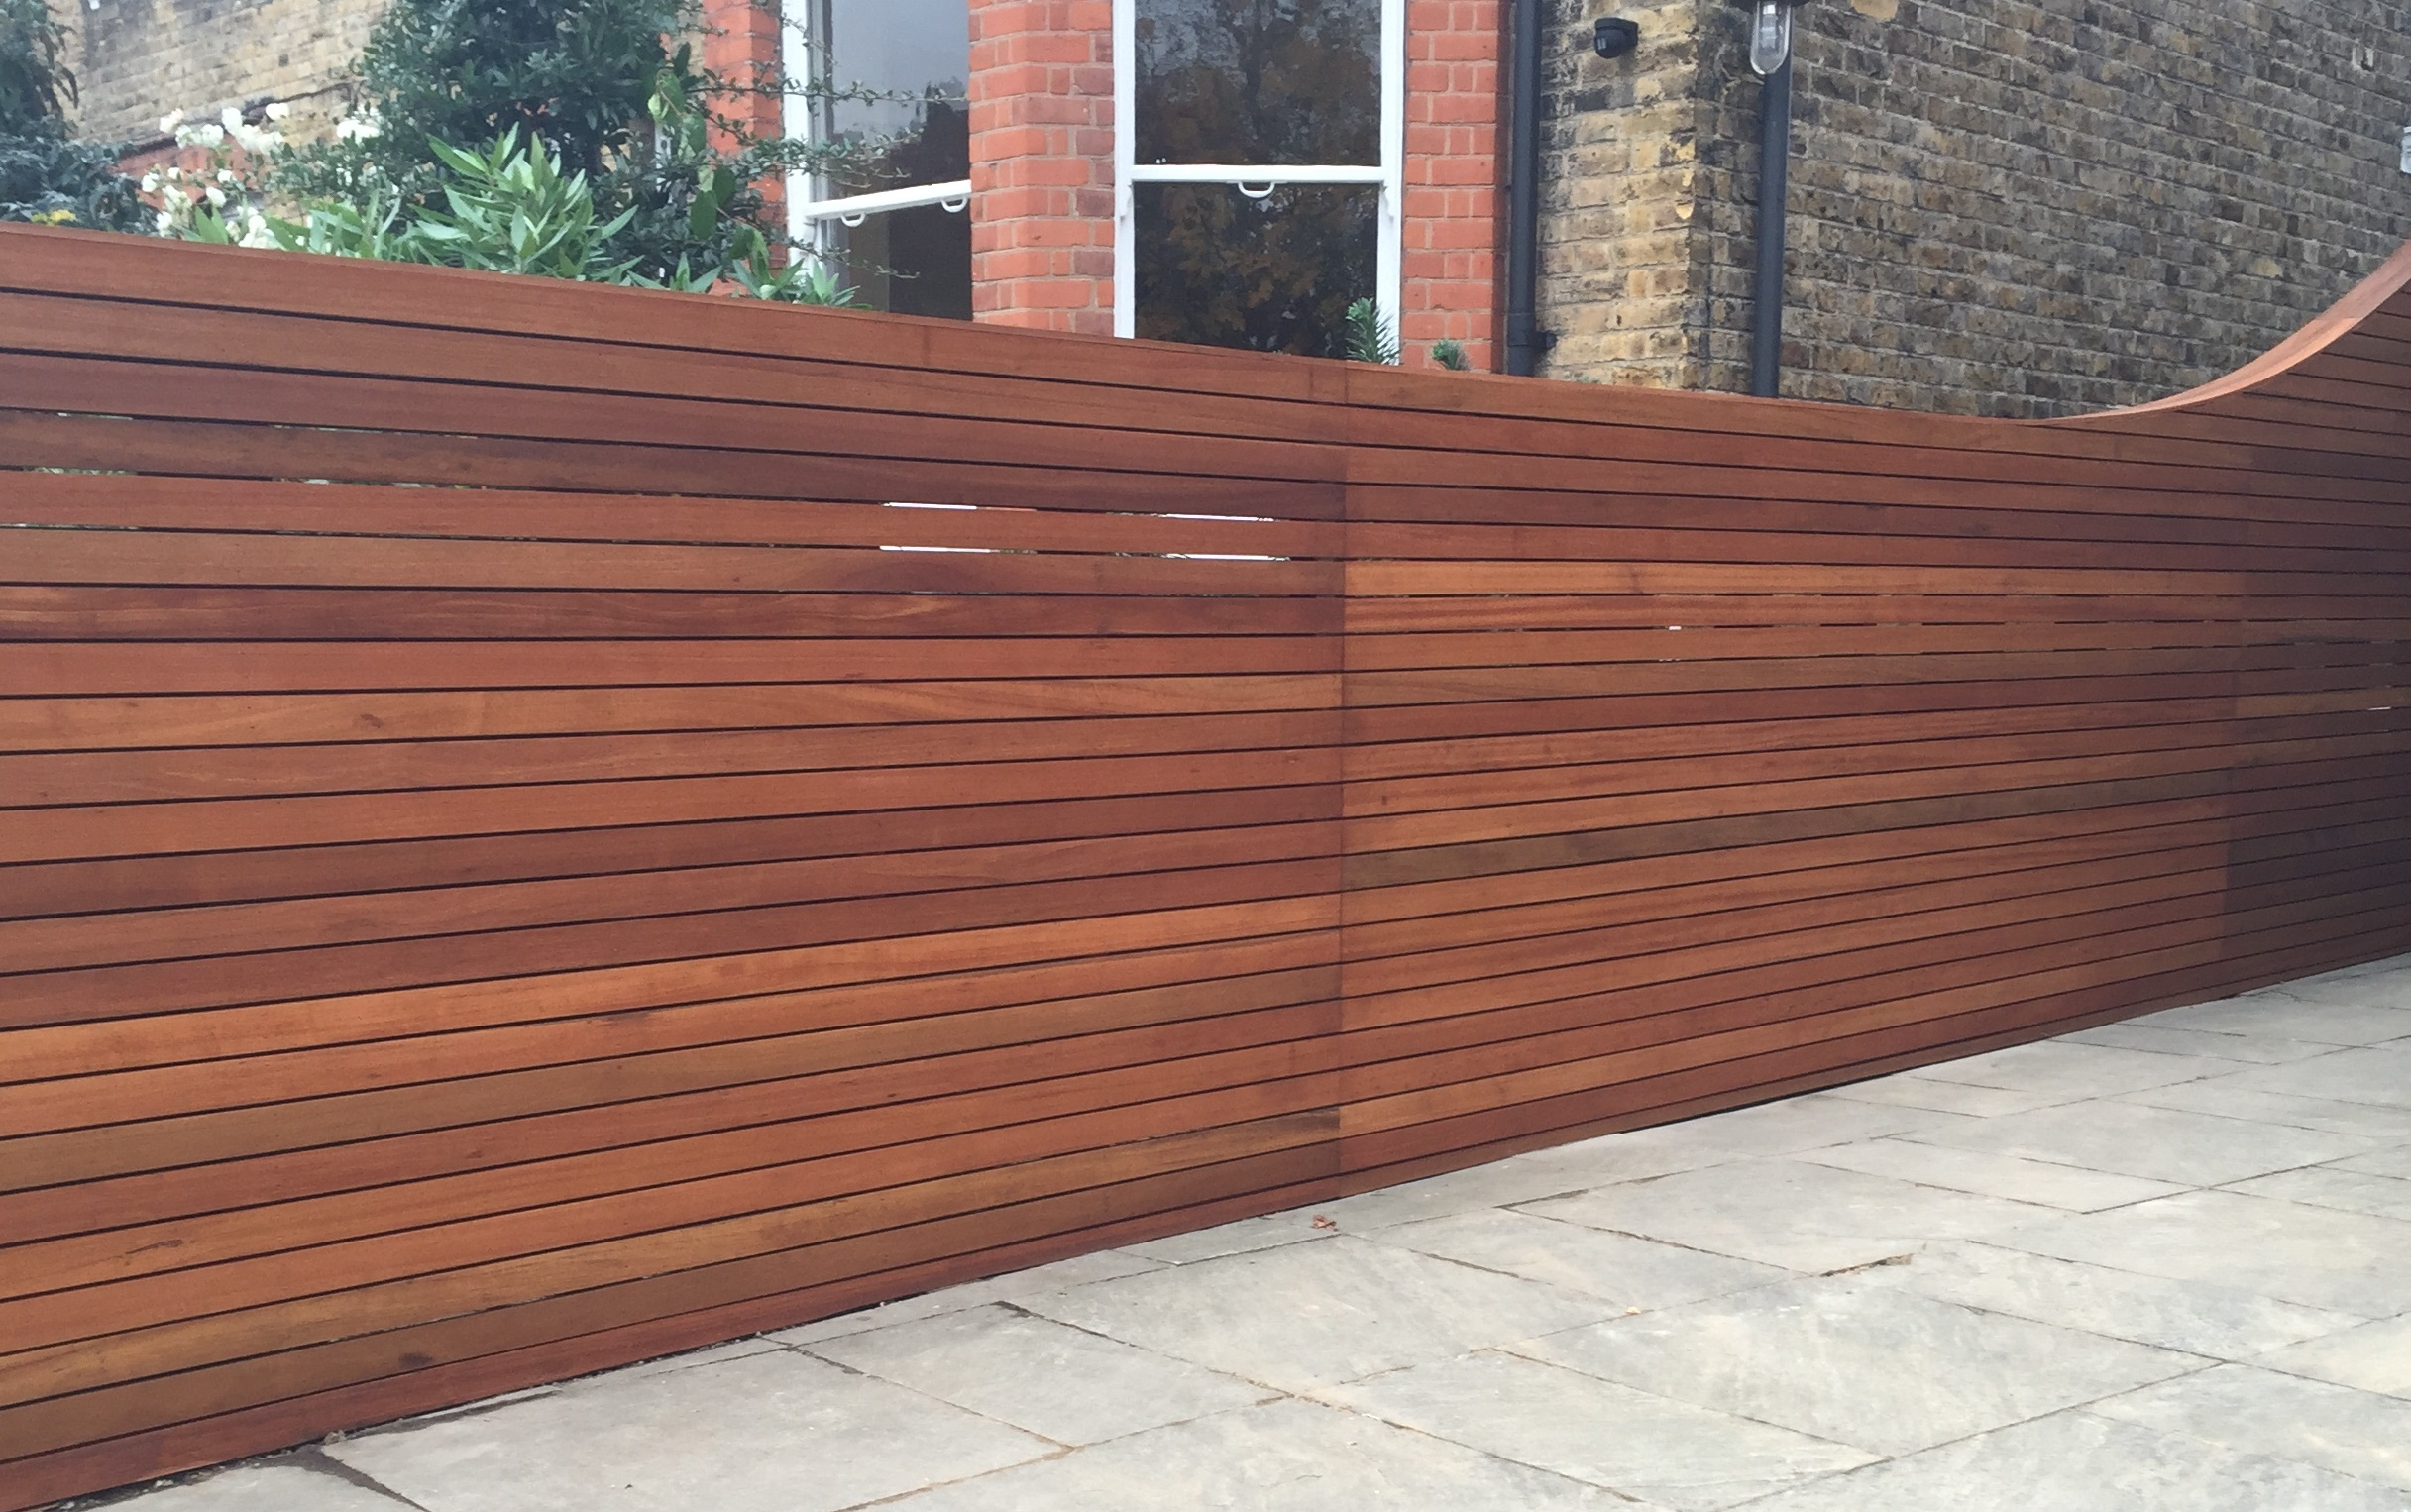 hardwood screen trellis fence horizontal slat balau hardwood cedar fence london